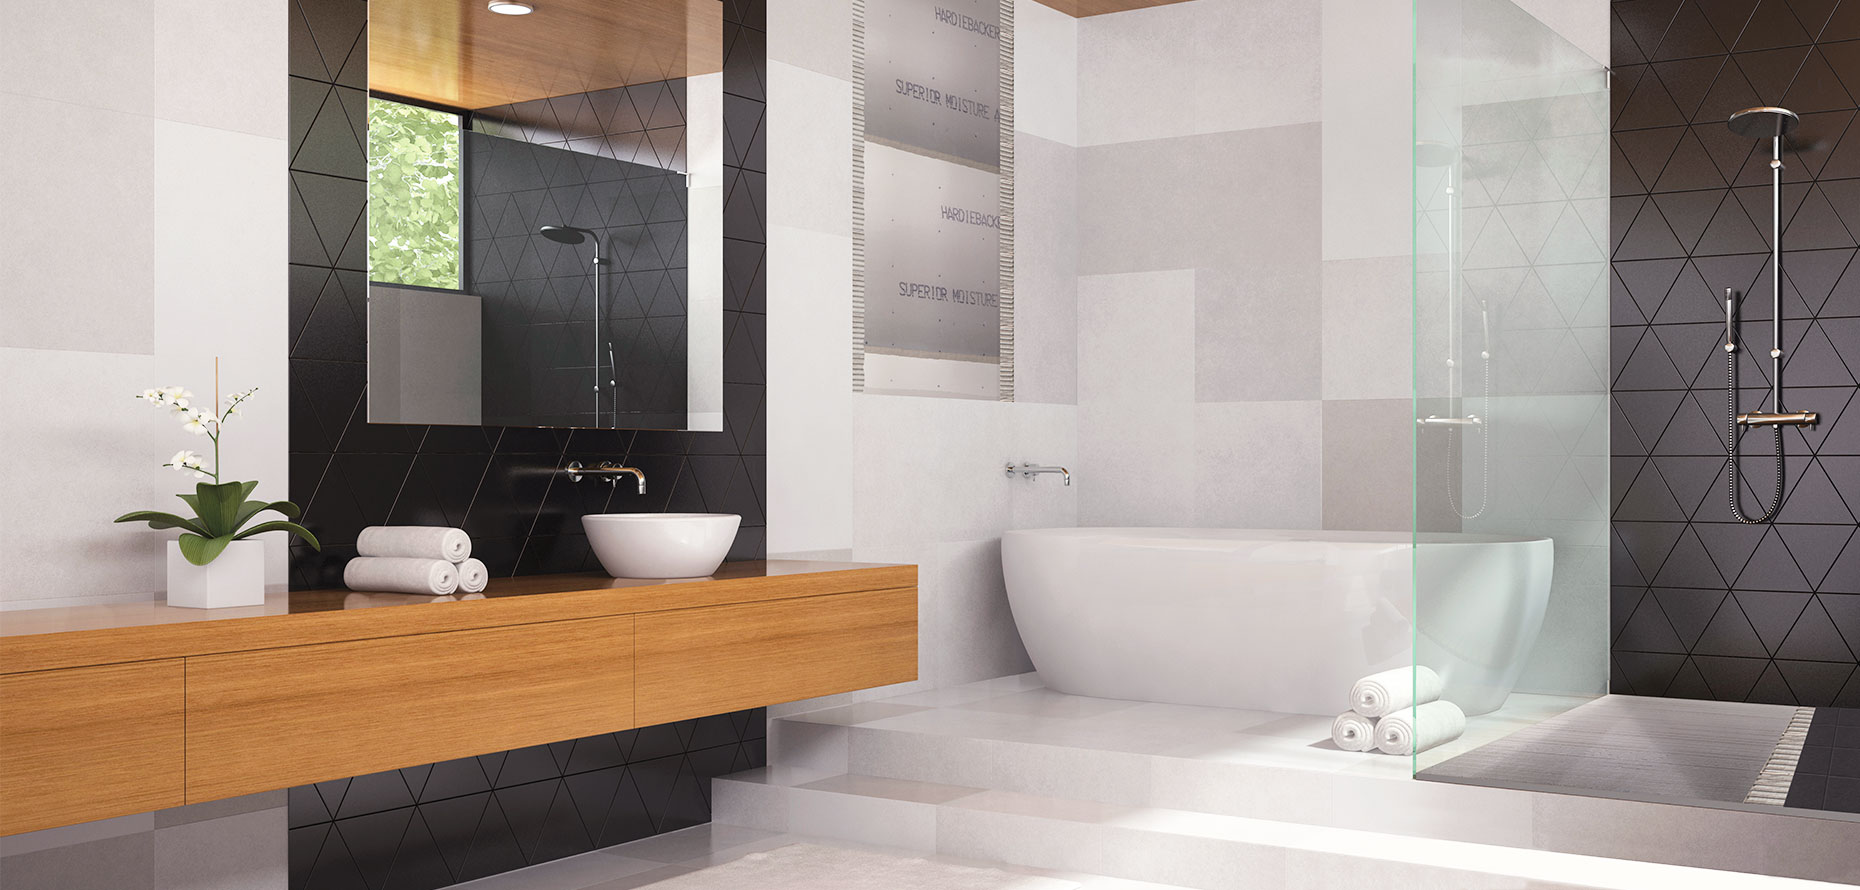 HardieBacker® Cement Board Bathroom